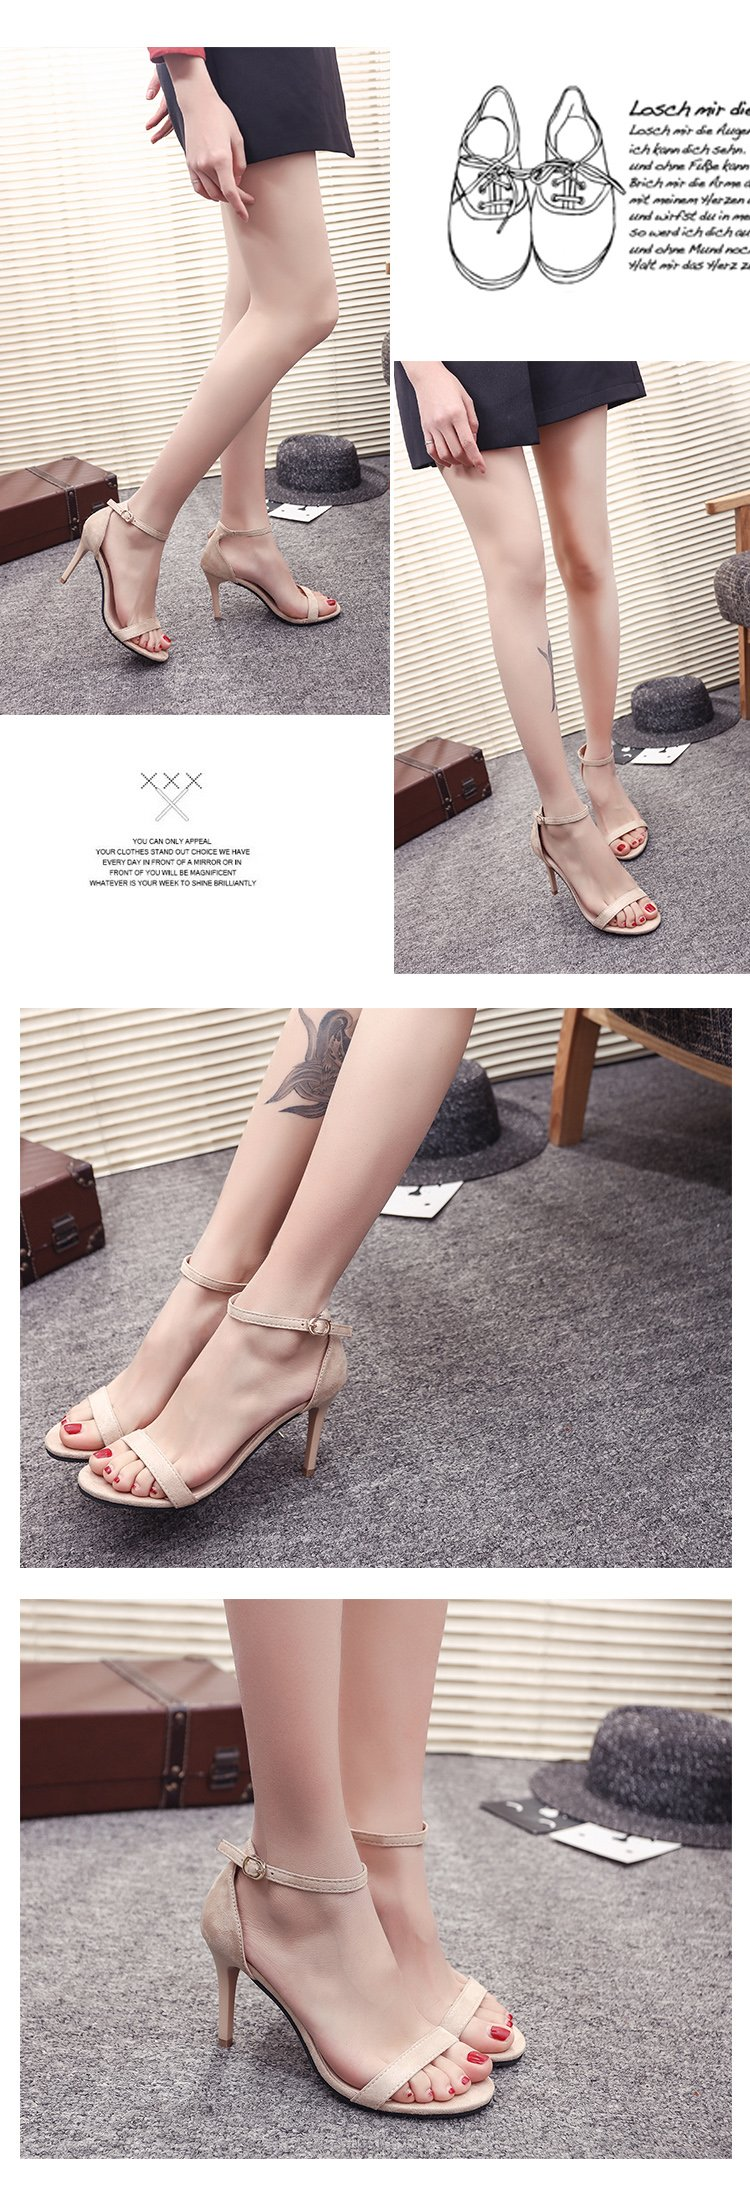 HTB1hHPpao rK1Rjy0Fcq6zEvVXav ORATEE Fashion Ankle Strap Women Casual Sandals Open Toe Summer High Heel Shoes Buckle Ladies Office Work Sandalias Shoes